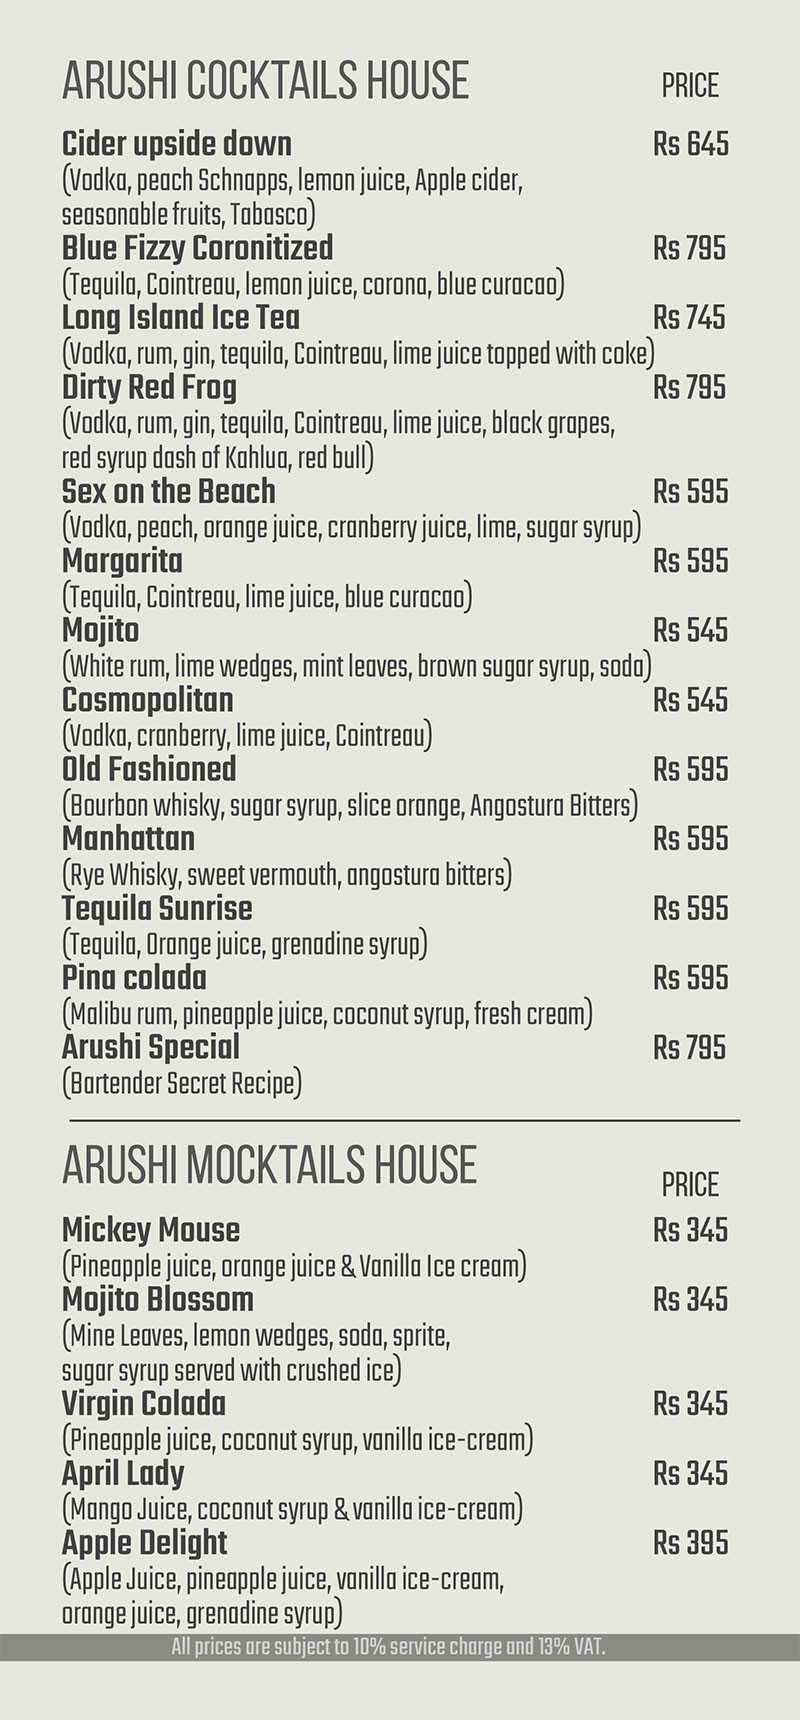 Arushi Cocktail House